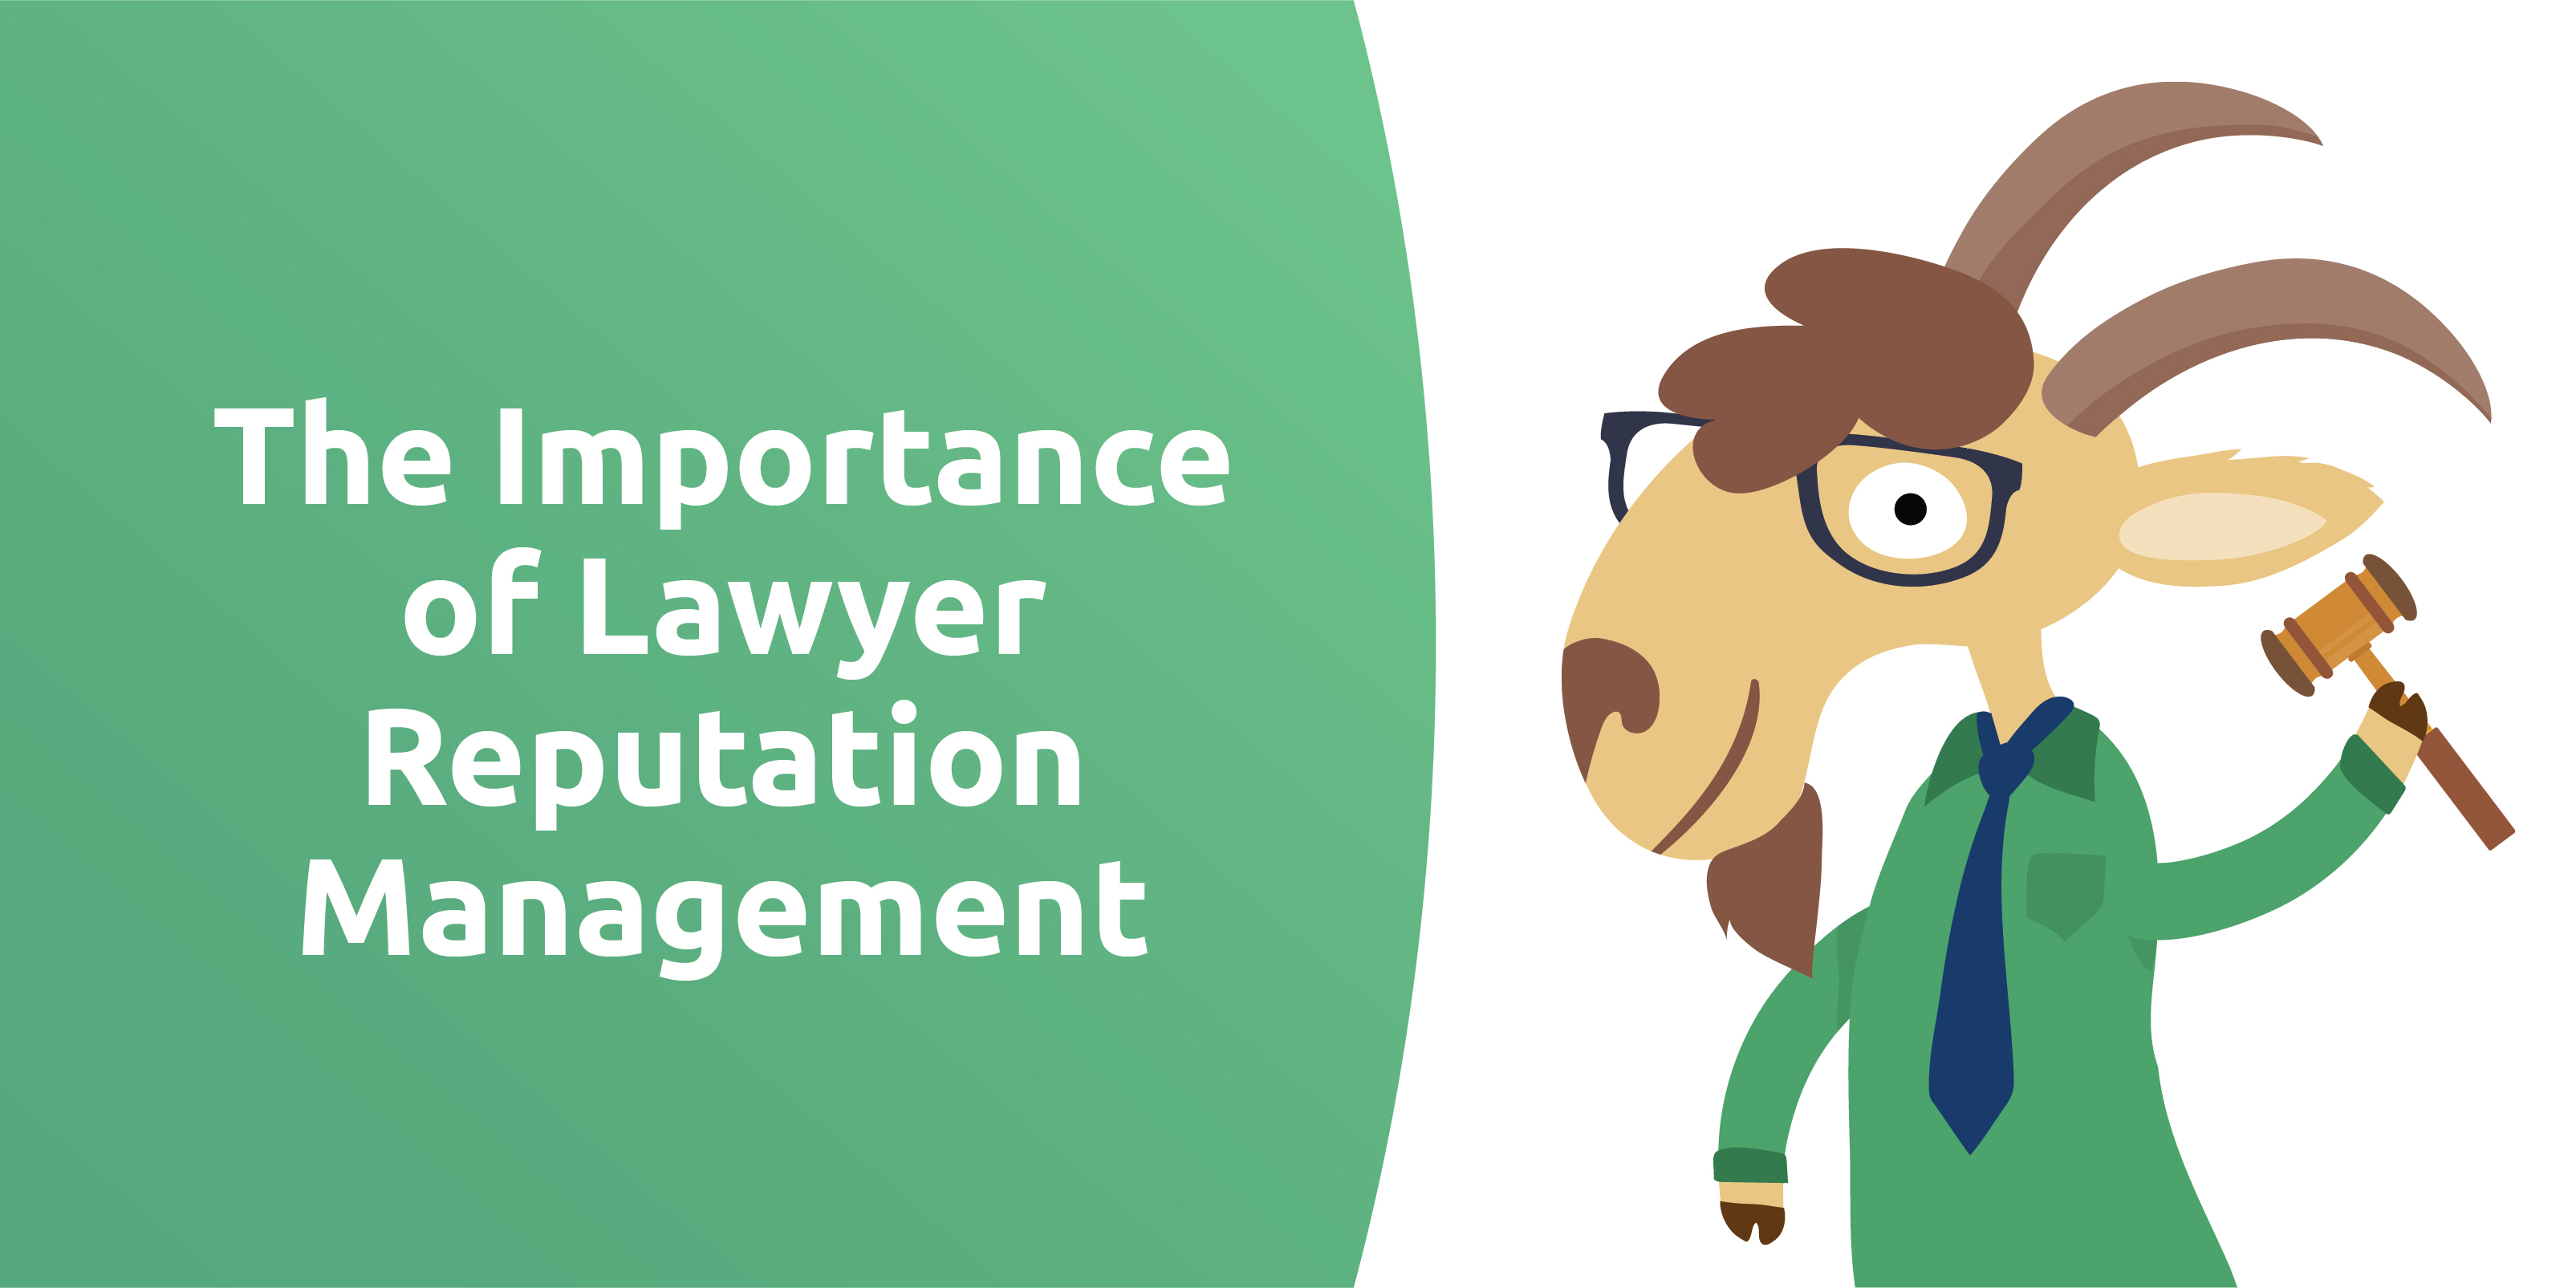 The Importance of Lawyer Reputation Management